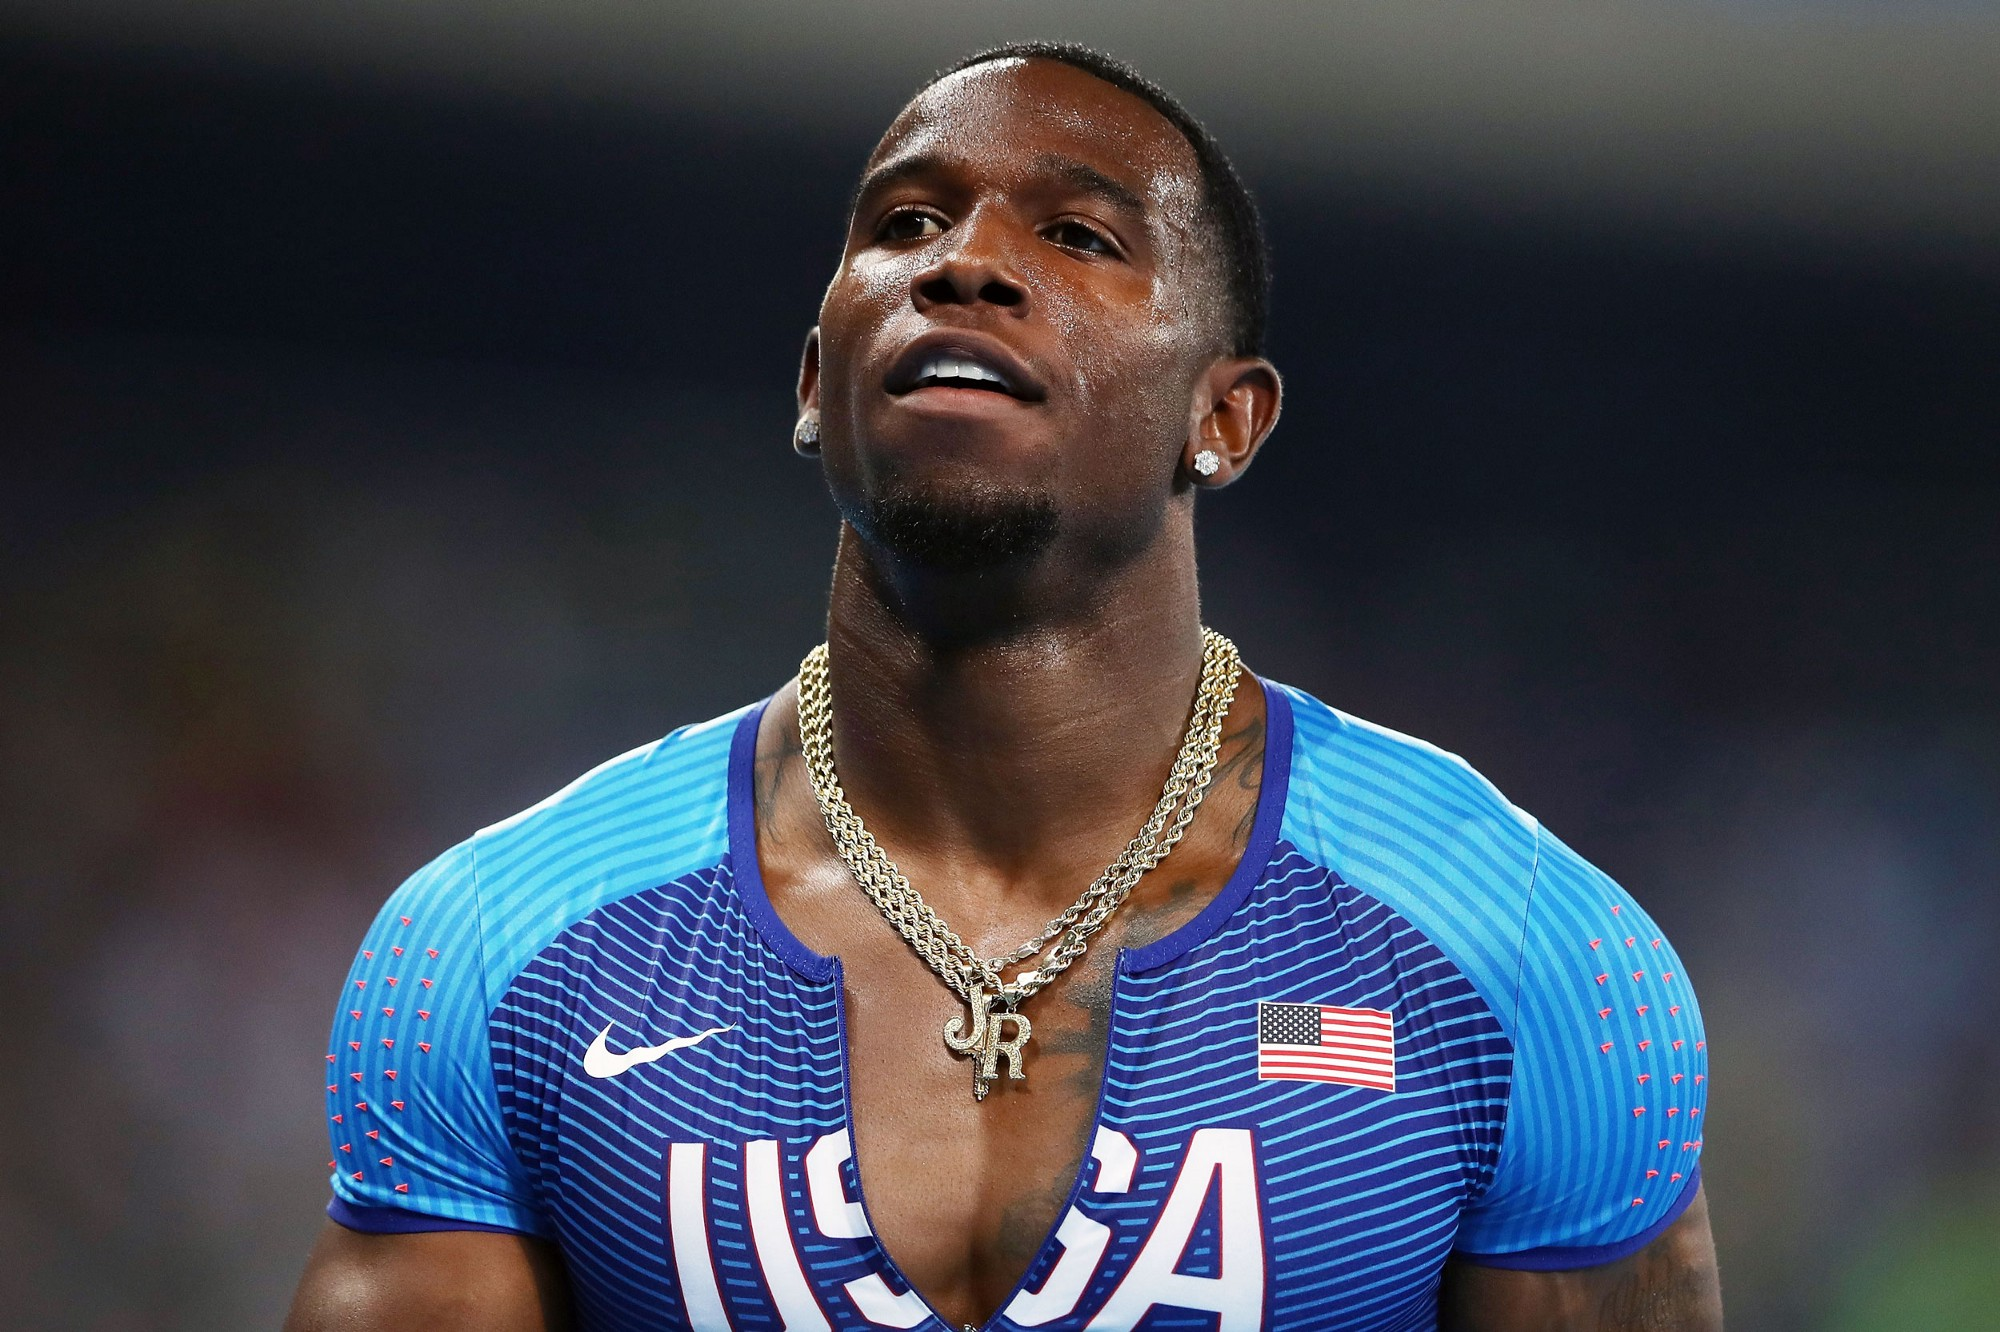 Olympic gold medalist fails drug test due to kissing girlfriend